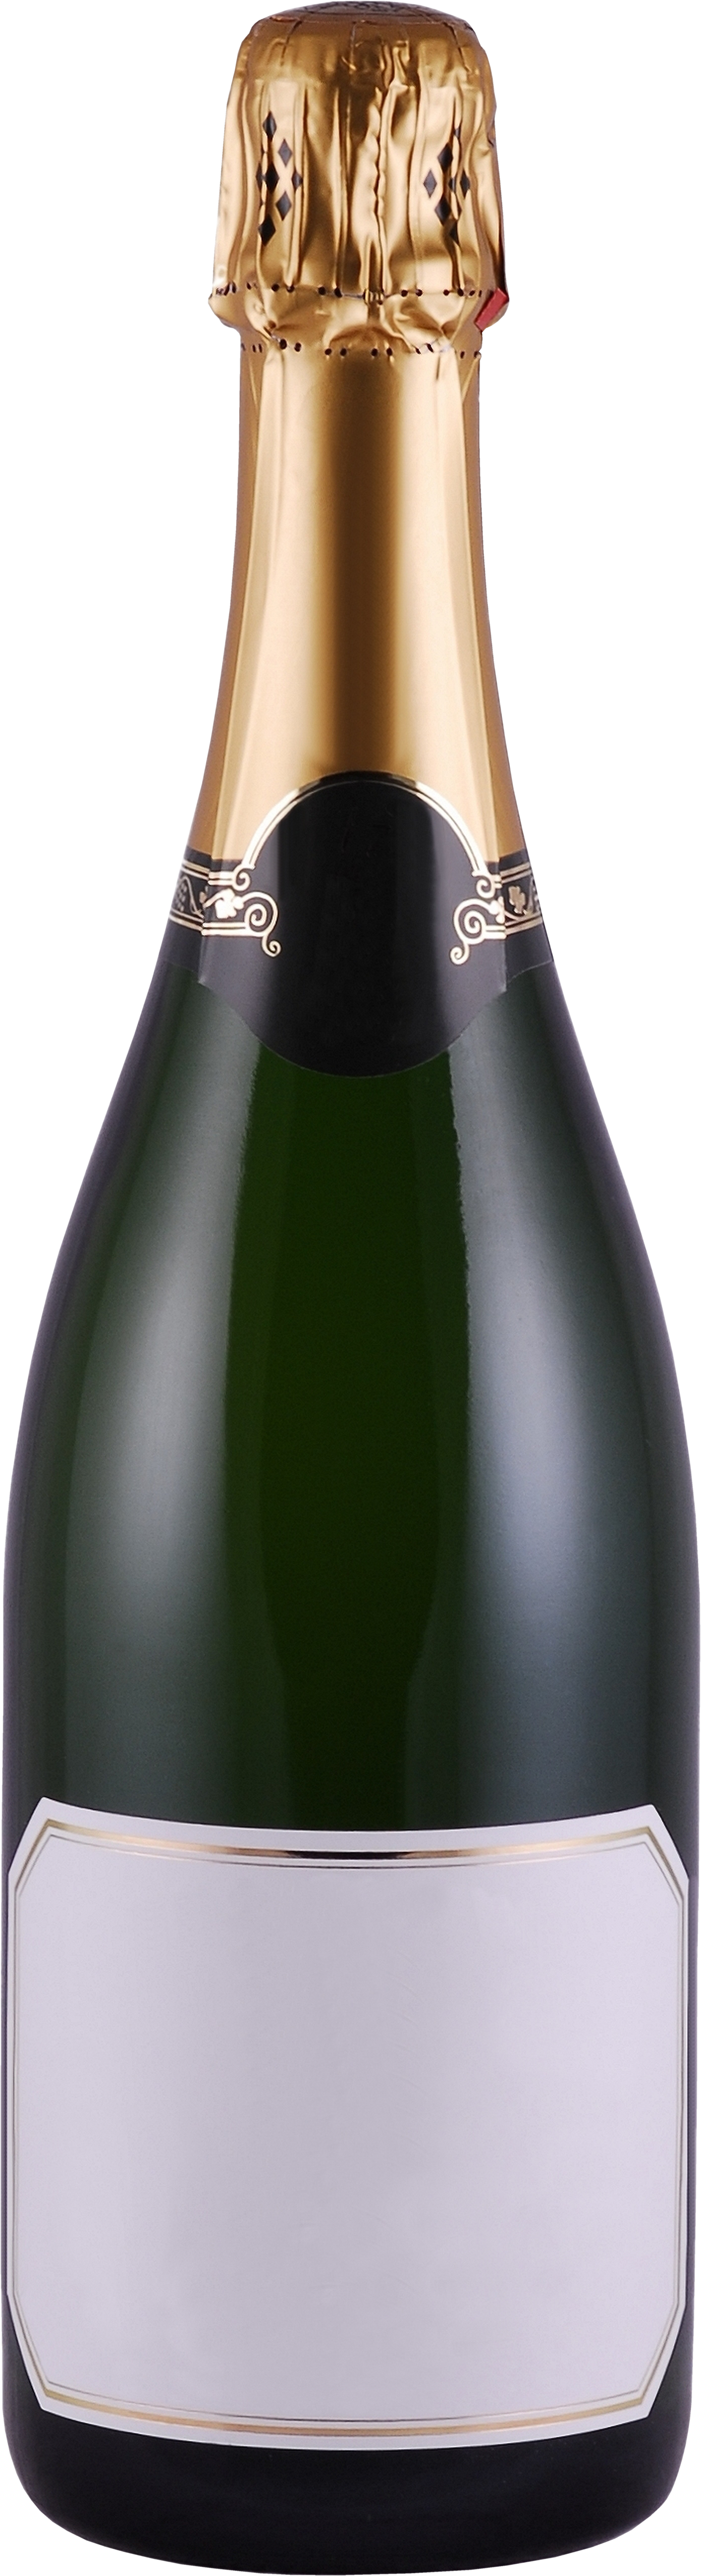 Champagne bottle png. Images free download